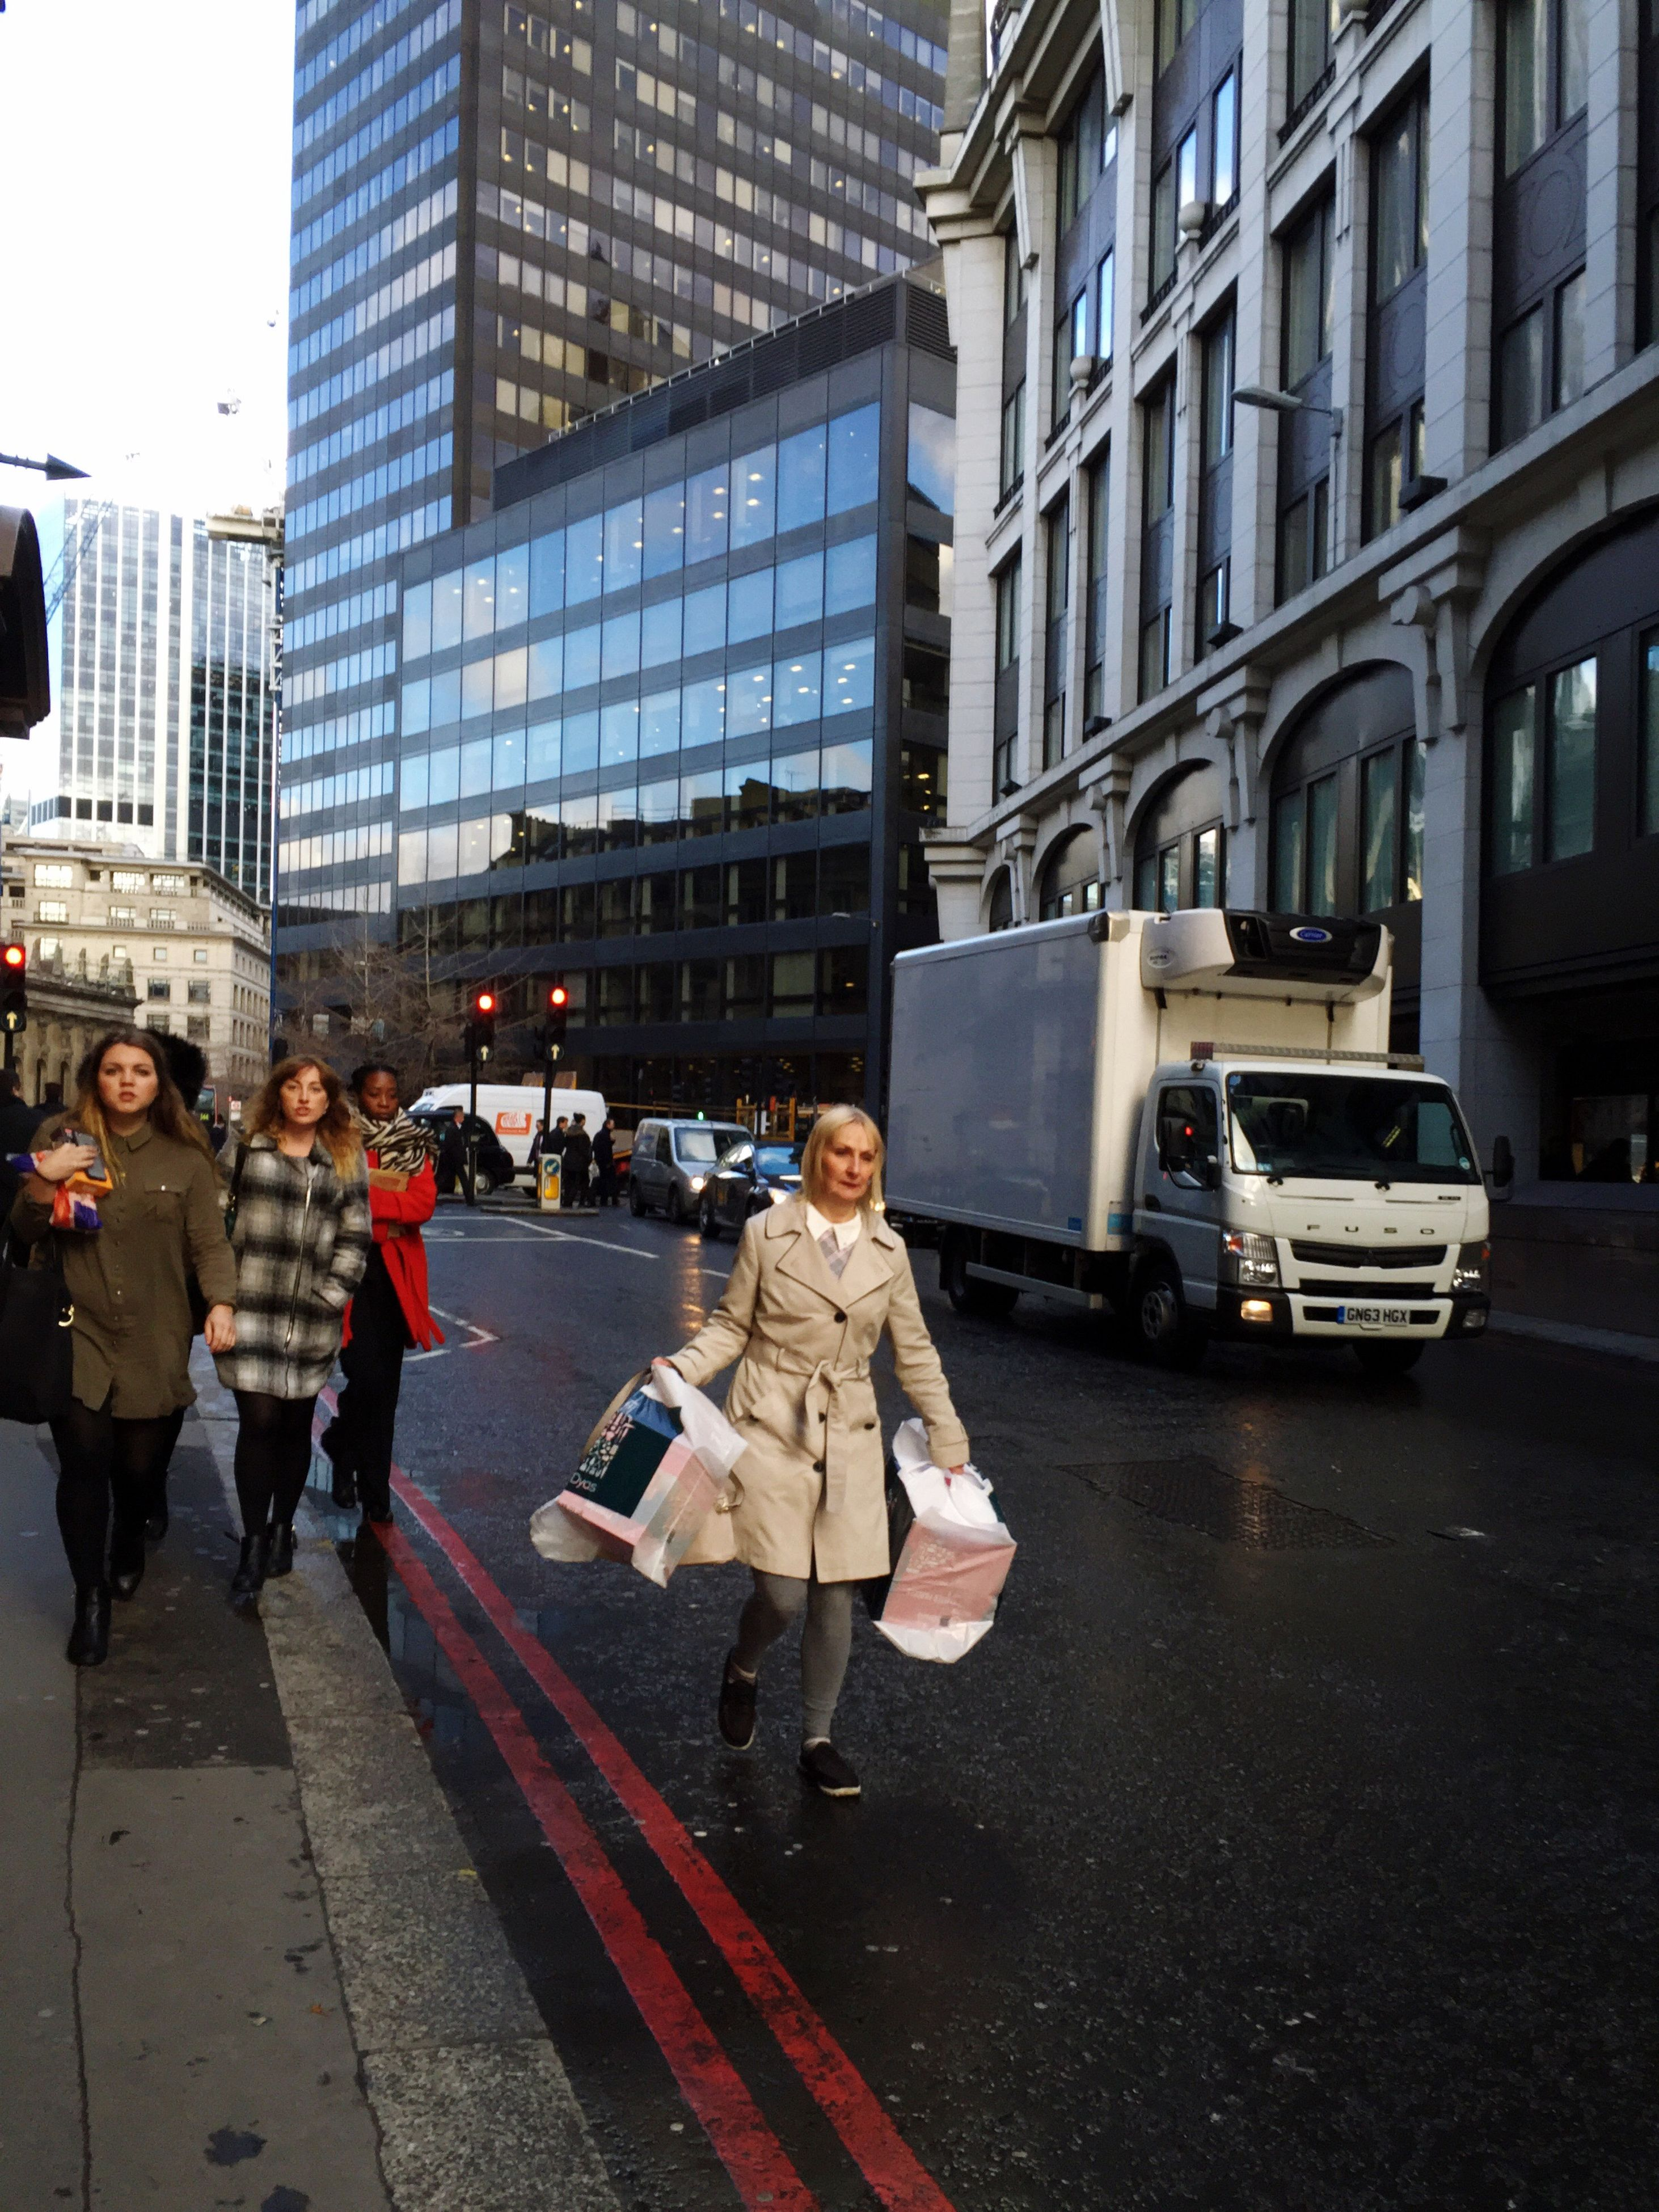 building exterior, city, architecture, street, built structure, city life, men, transportation, lifestyles, walking, car, person, city street, large group of people, land vehicle, road, mode of transport, zebra crossing, leisure activity